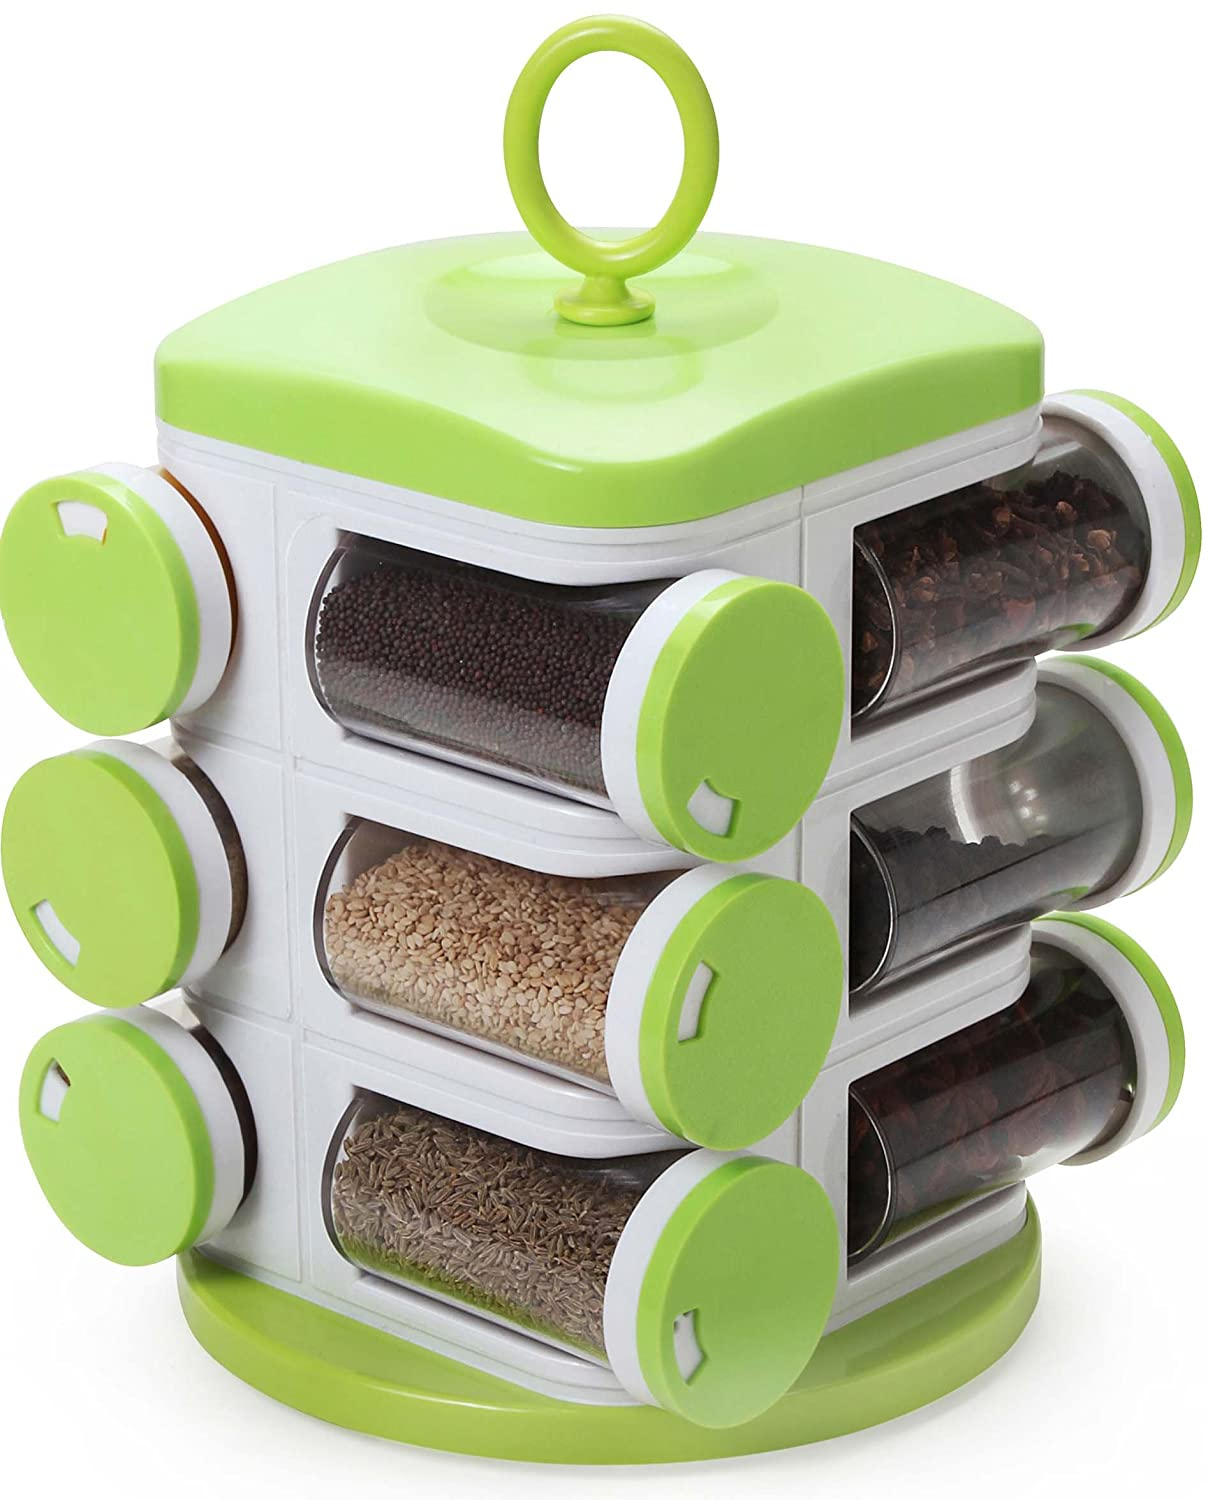 12-Jar Spice Rack